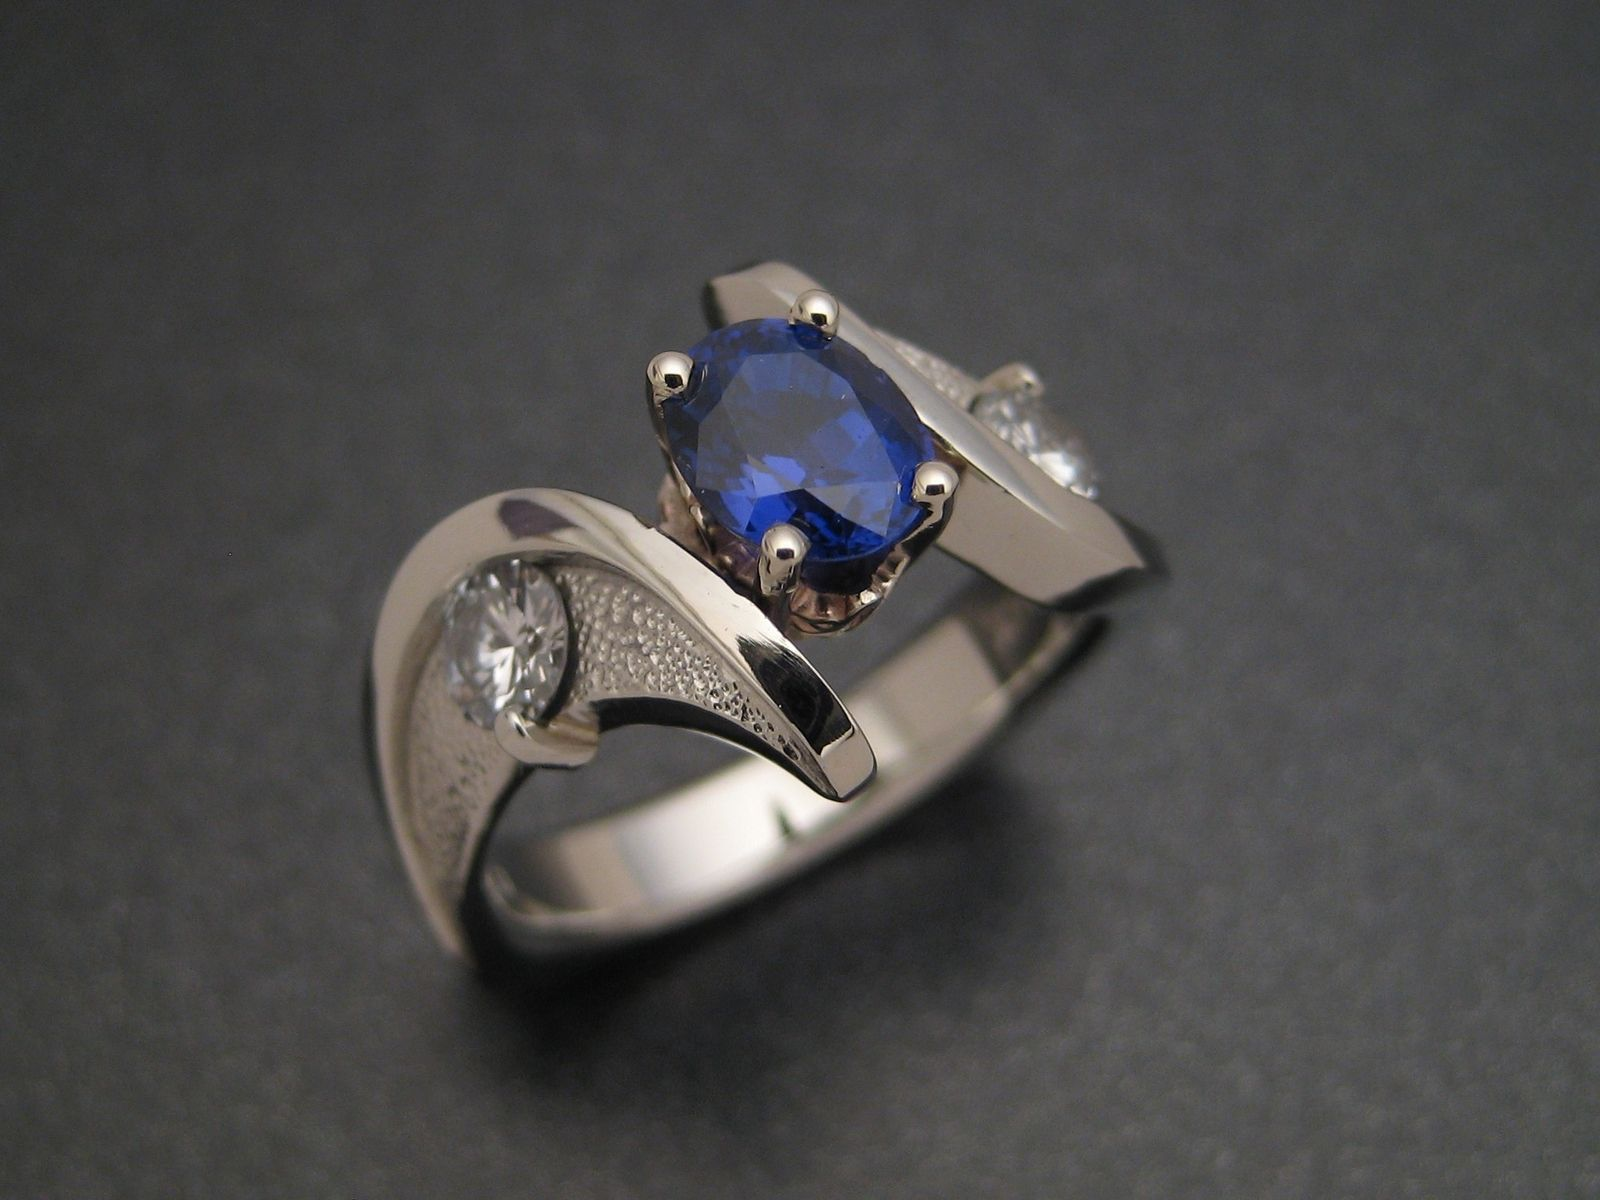 masters s bands rings viewing men band of jewelry gallery blog attachment photo wedding blue within and art mens engagement sapphire